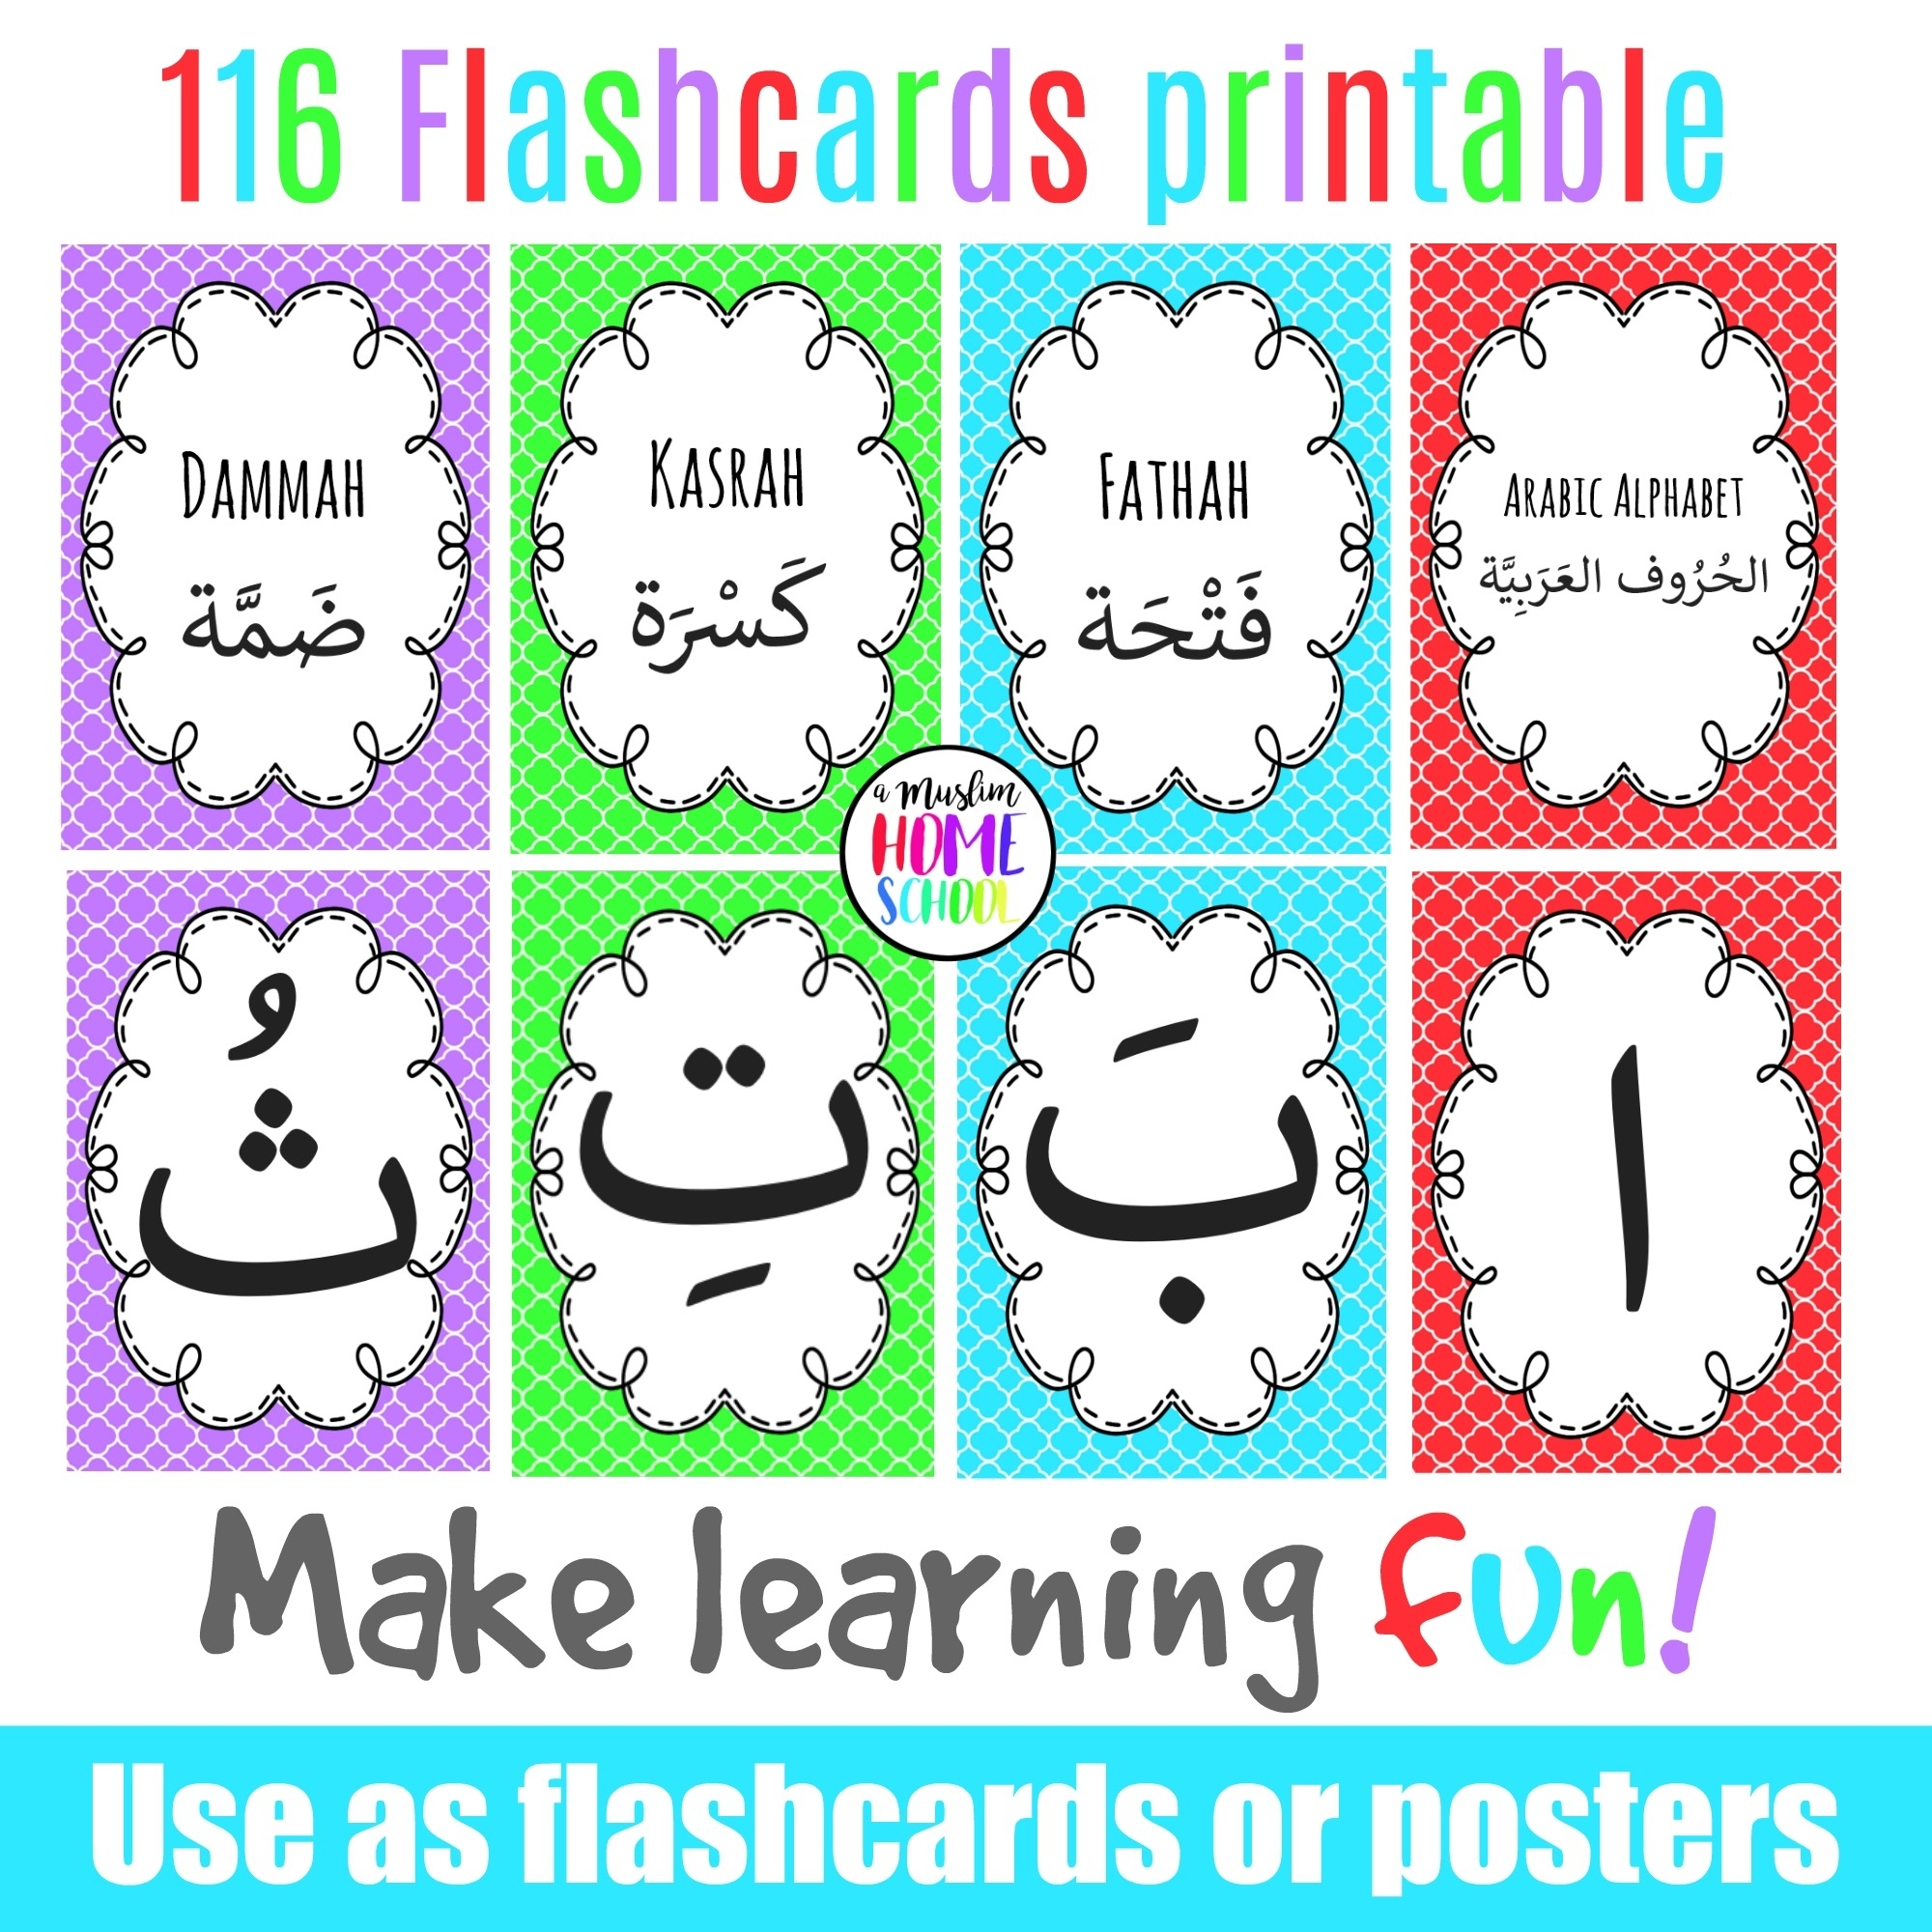 Arabic Alphabet Poster Flashcards - Makkah Centric Education intended for Arabic Printable Days Of The Week